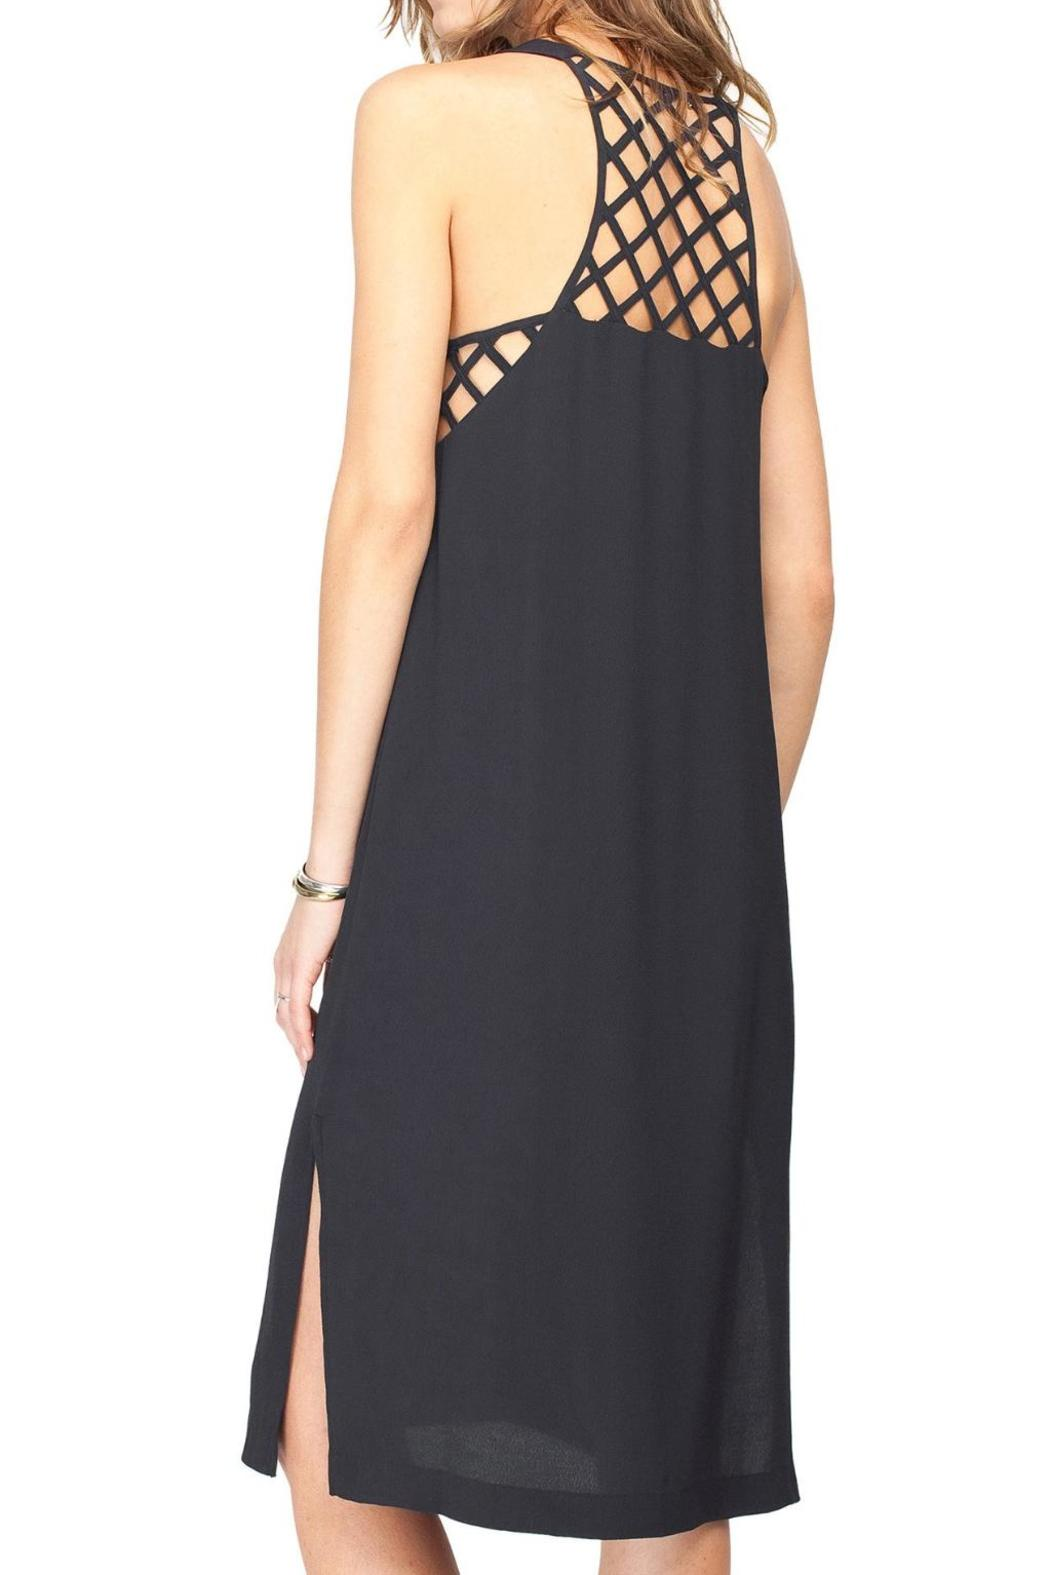 Gentle Fawn Worship Dress - Side Cropped Image